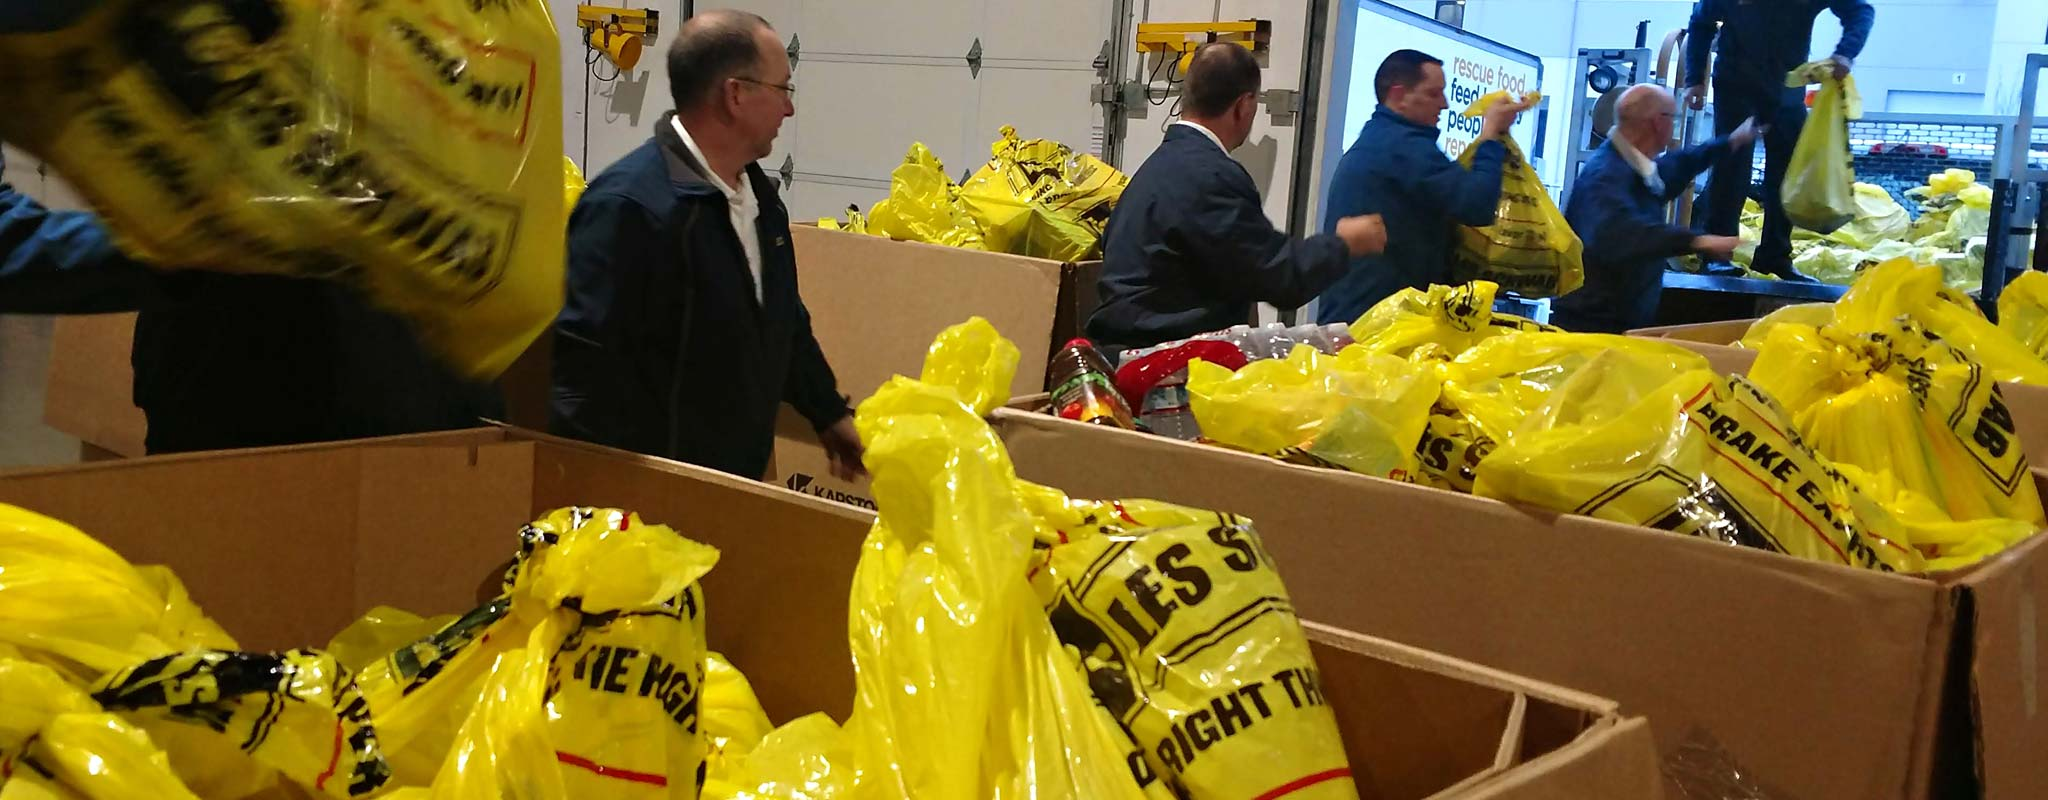 Les Schwab employees transferring collected food to a vehicle for delivery.